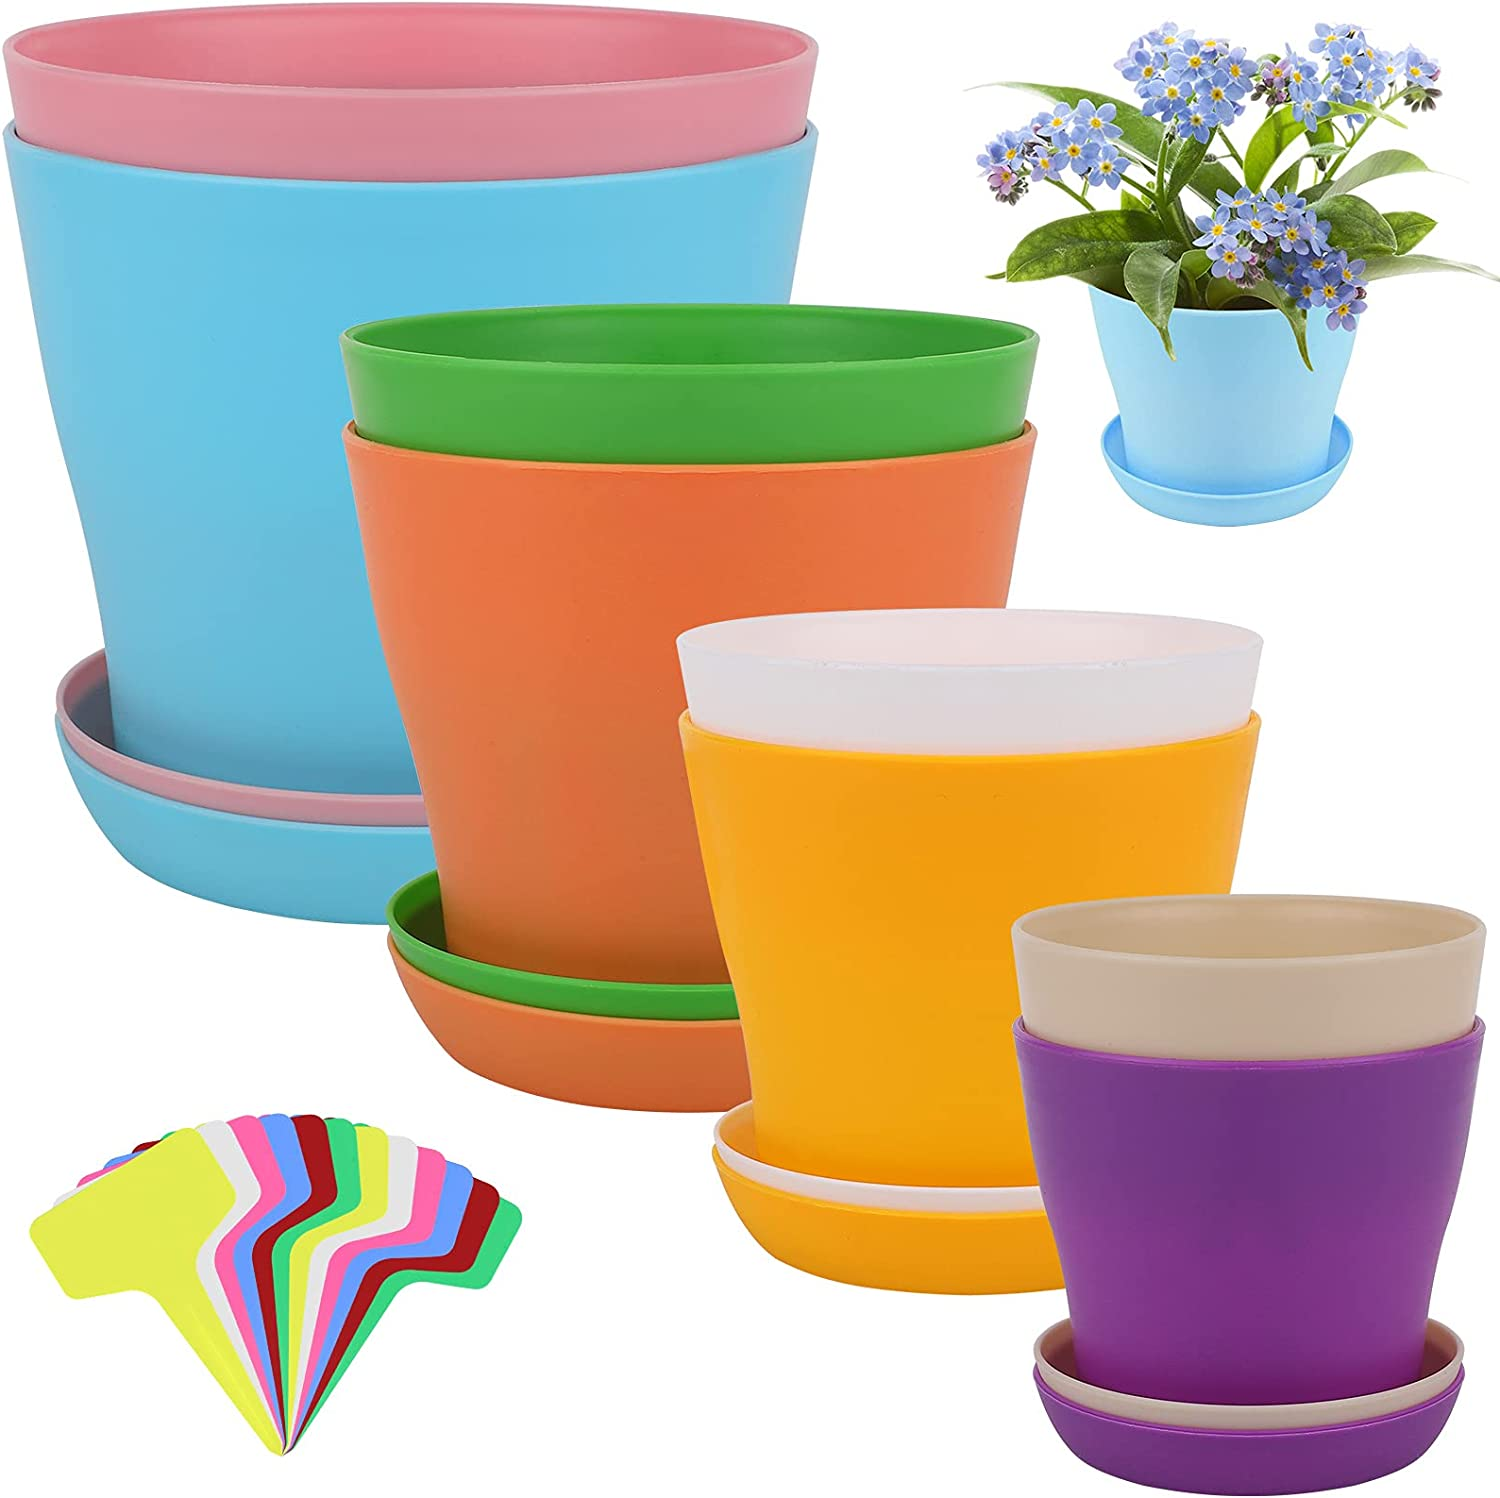 ADXCO 8 Pack Colorful Plastic Planters Small Plant Pots Flower Seedling Nursery Pots for Your Room, House Desk, Office, Garden Decor with Pallet